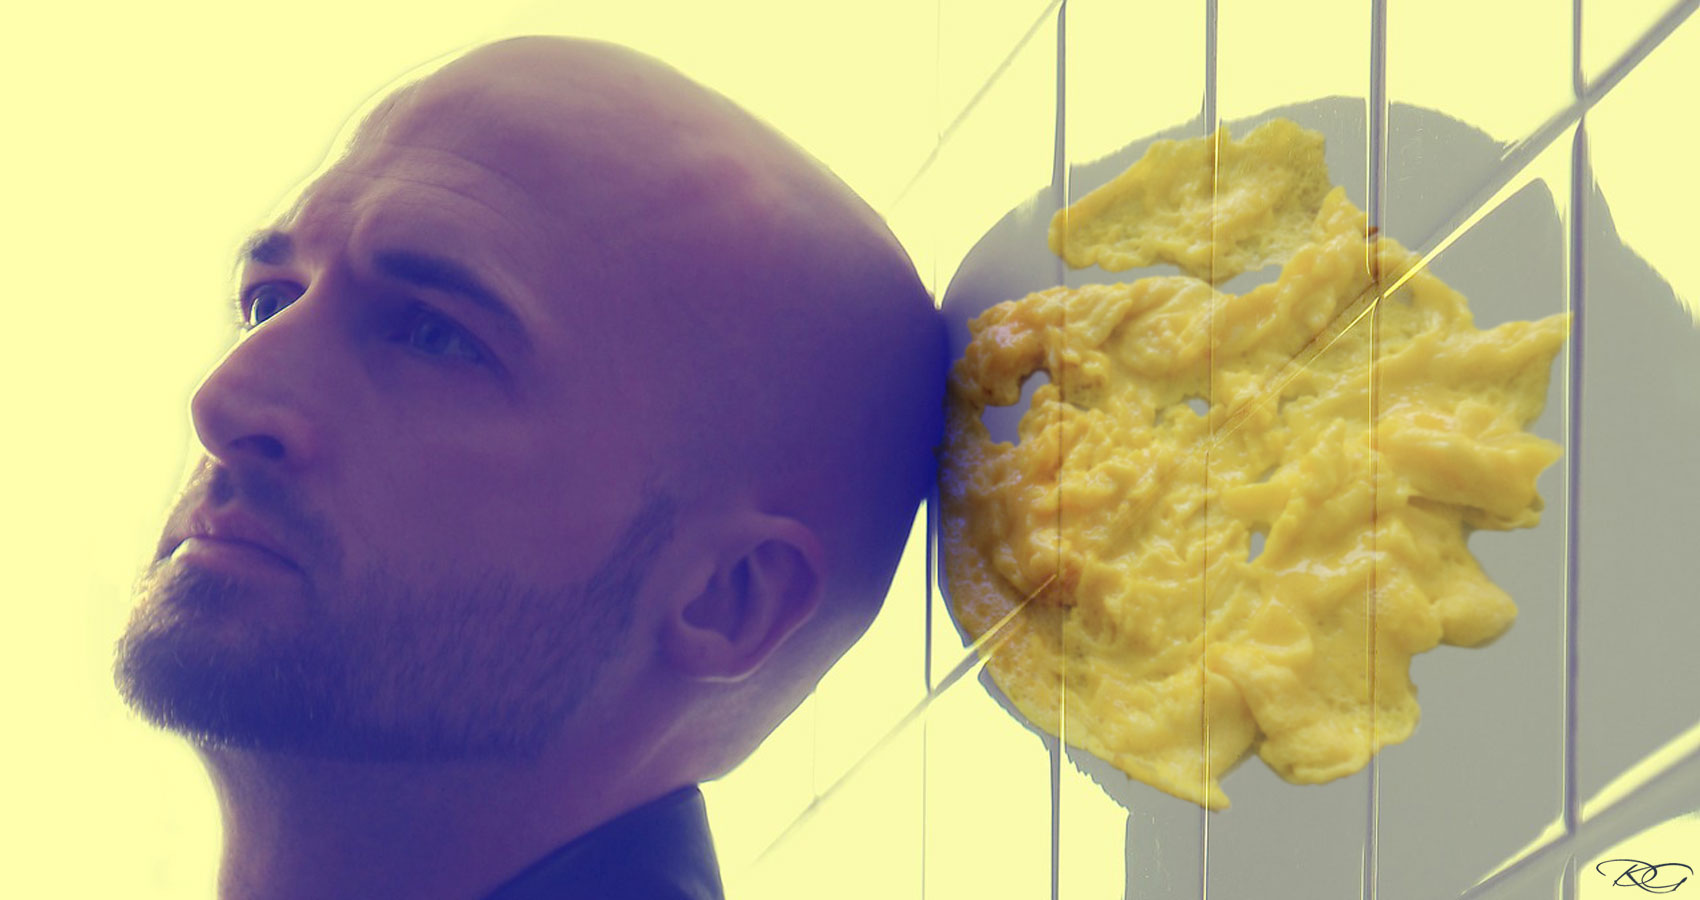 Scrambled Egg, written by JOHN BAVERSTOCK at Spillwords.com